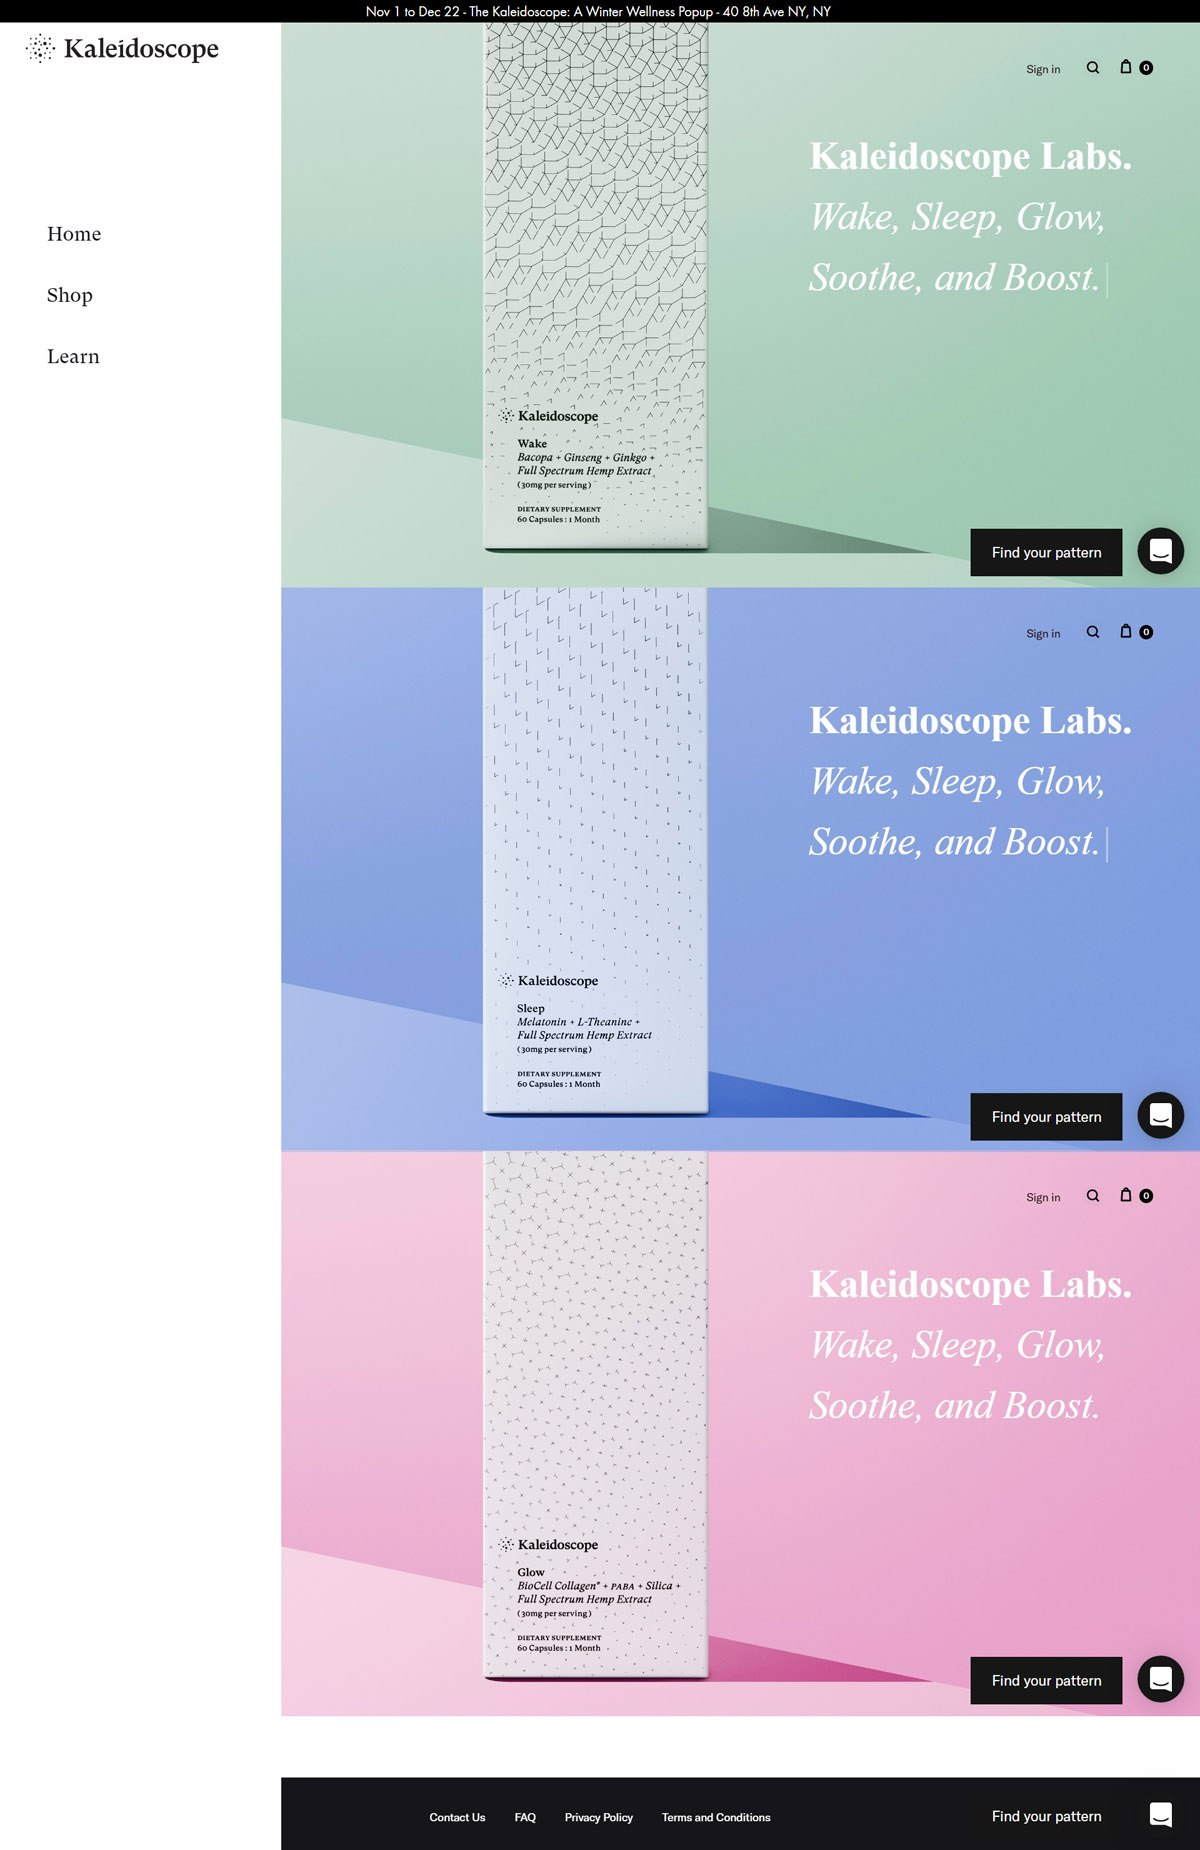 eCommerce website: Kaleidoscope Labs